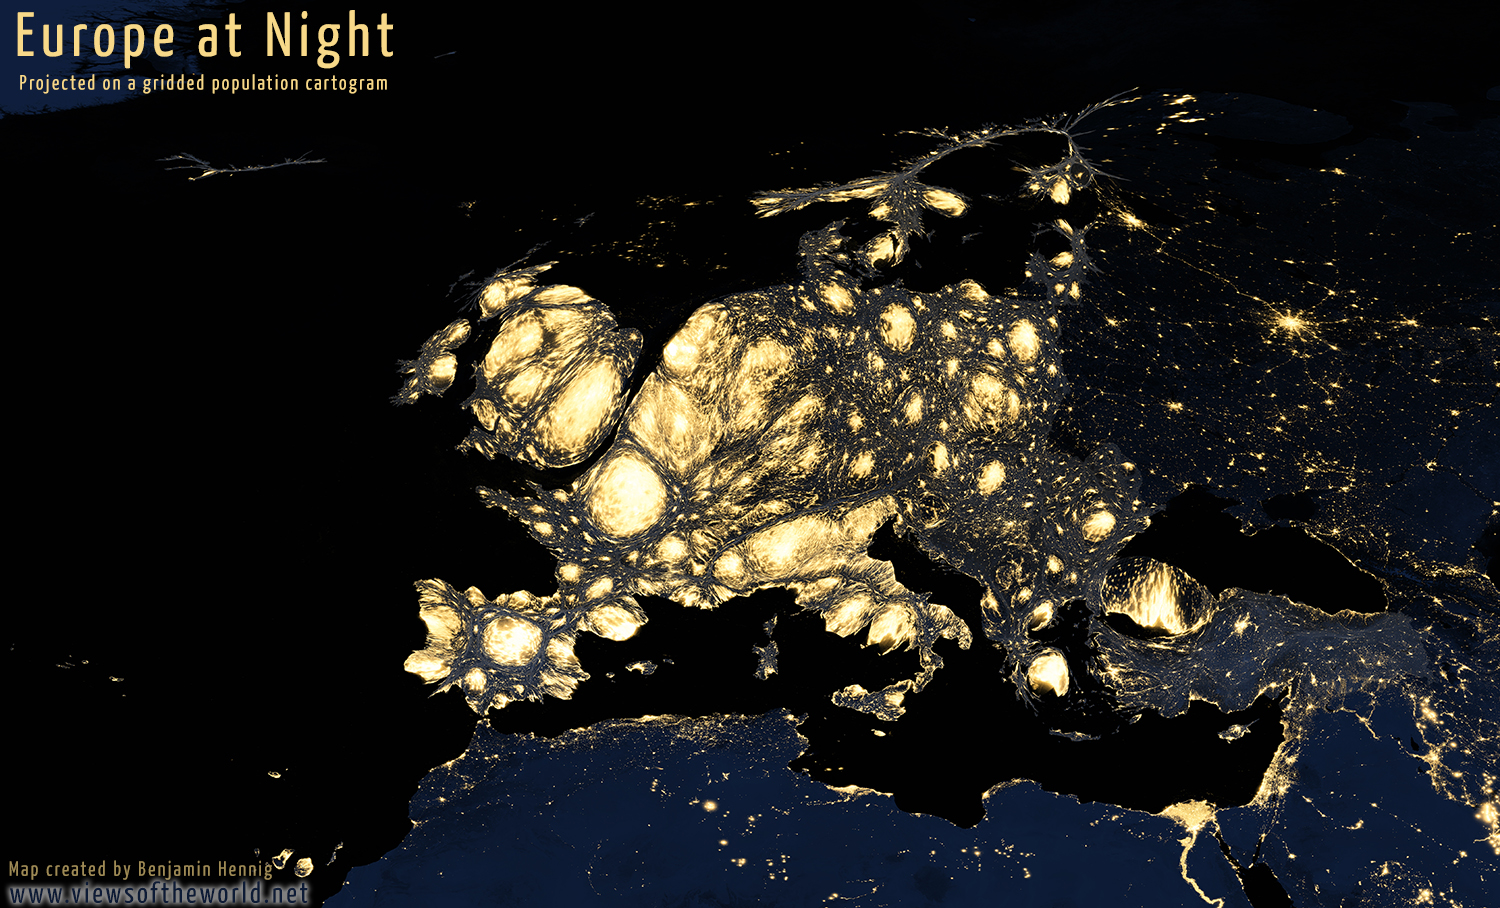 Map of Europe at Night shown on a gridded population cartogram